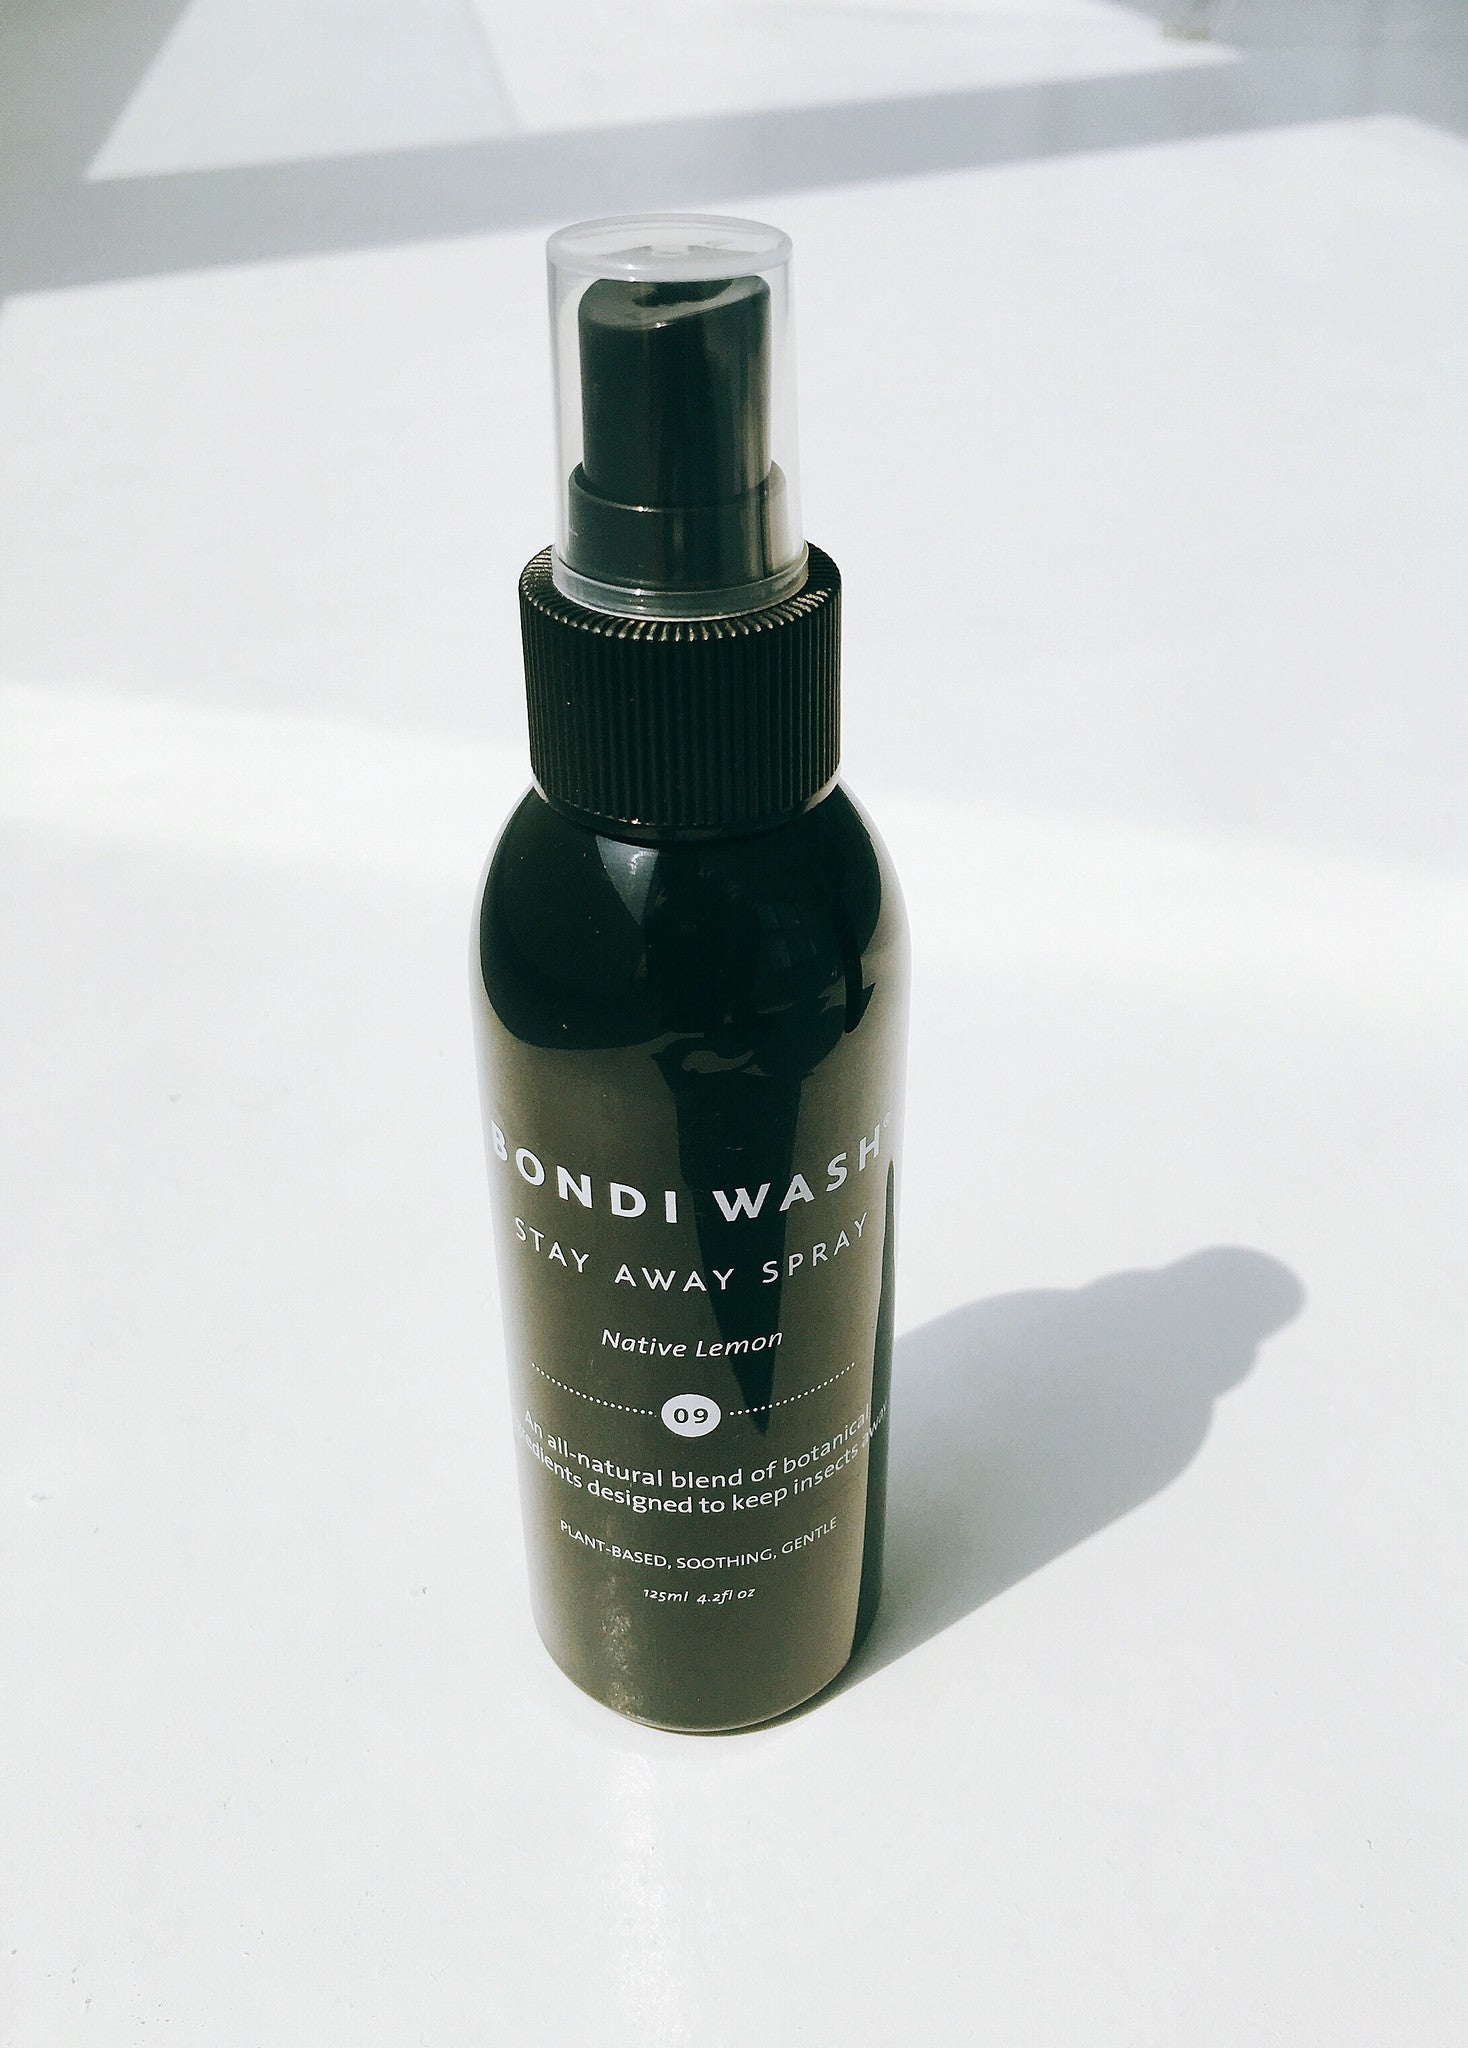 Bondi Wash - Stay Away Spray(Native Lemon Insect Repellent) 125ml 澳洲檸檬驅蚊噴霧